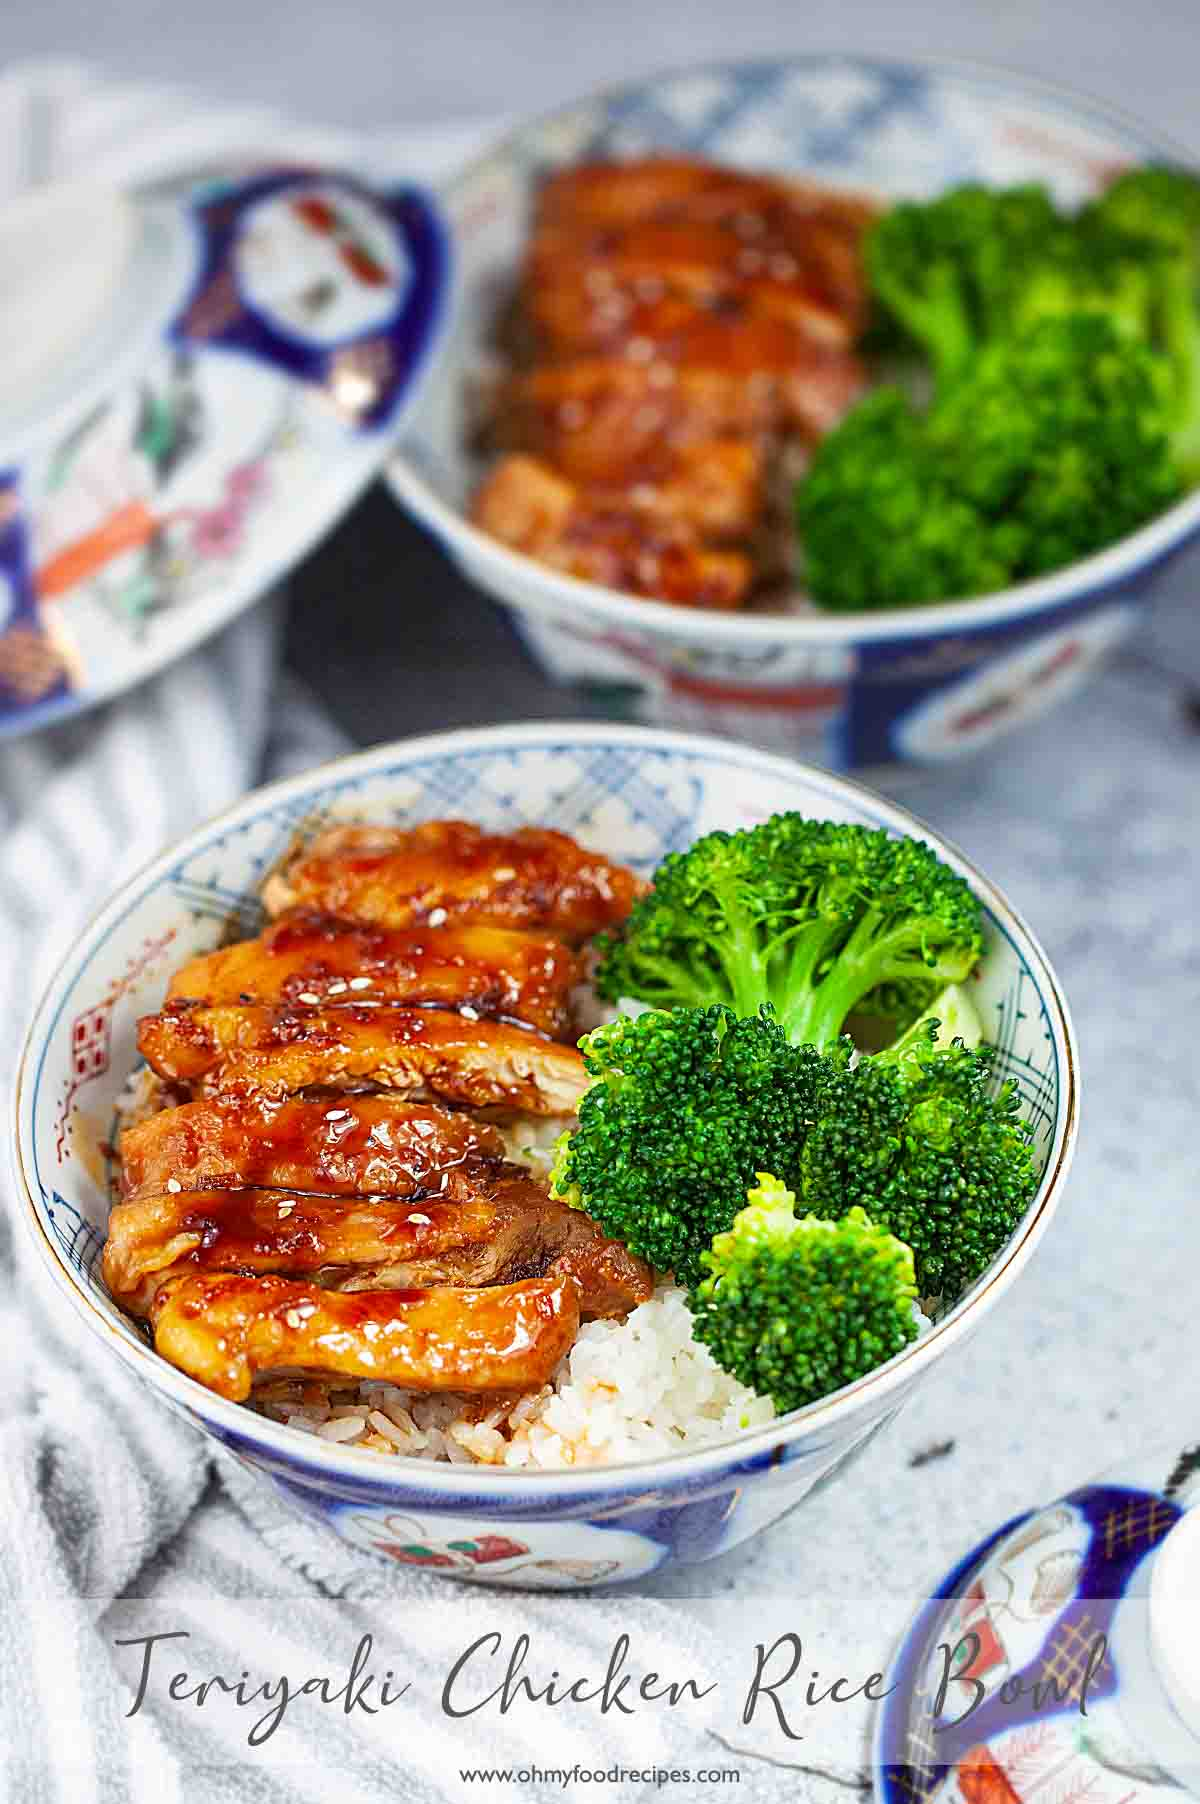 Japanese teriyaki chicken rice bowls with gray striped towel